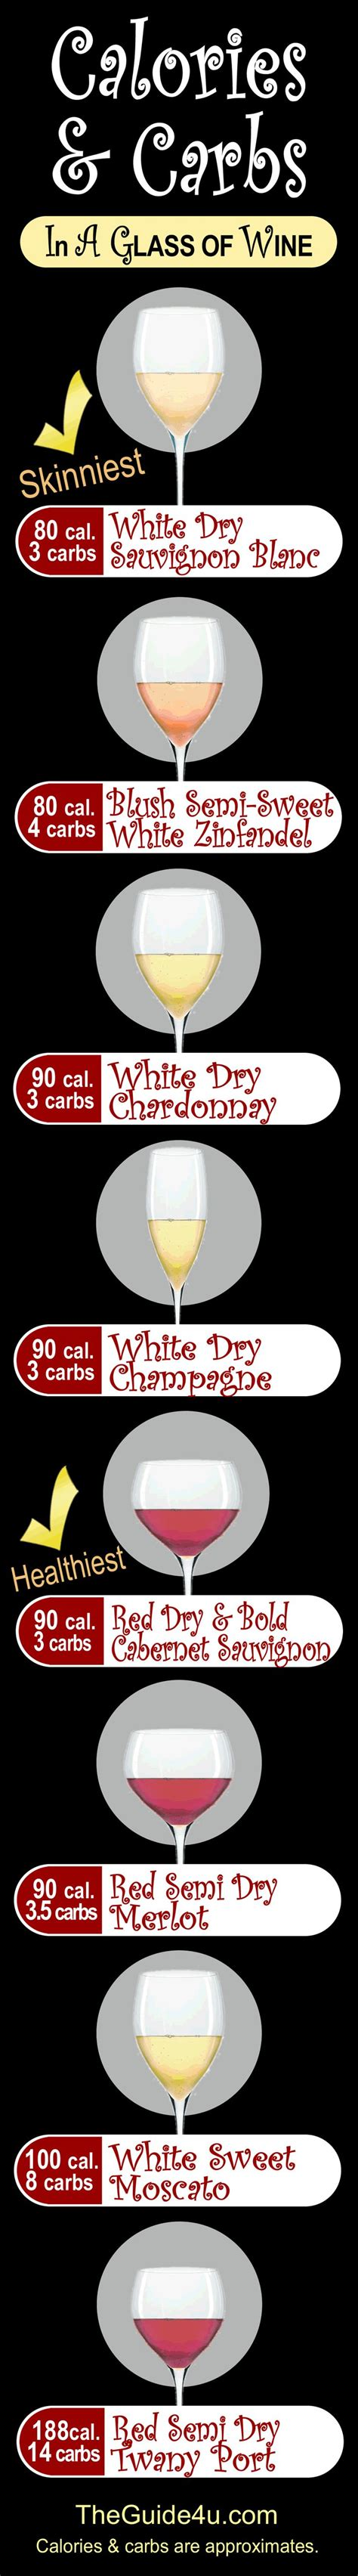 carbohydrates wine 75 best images about carbohydrate balance on